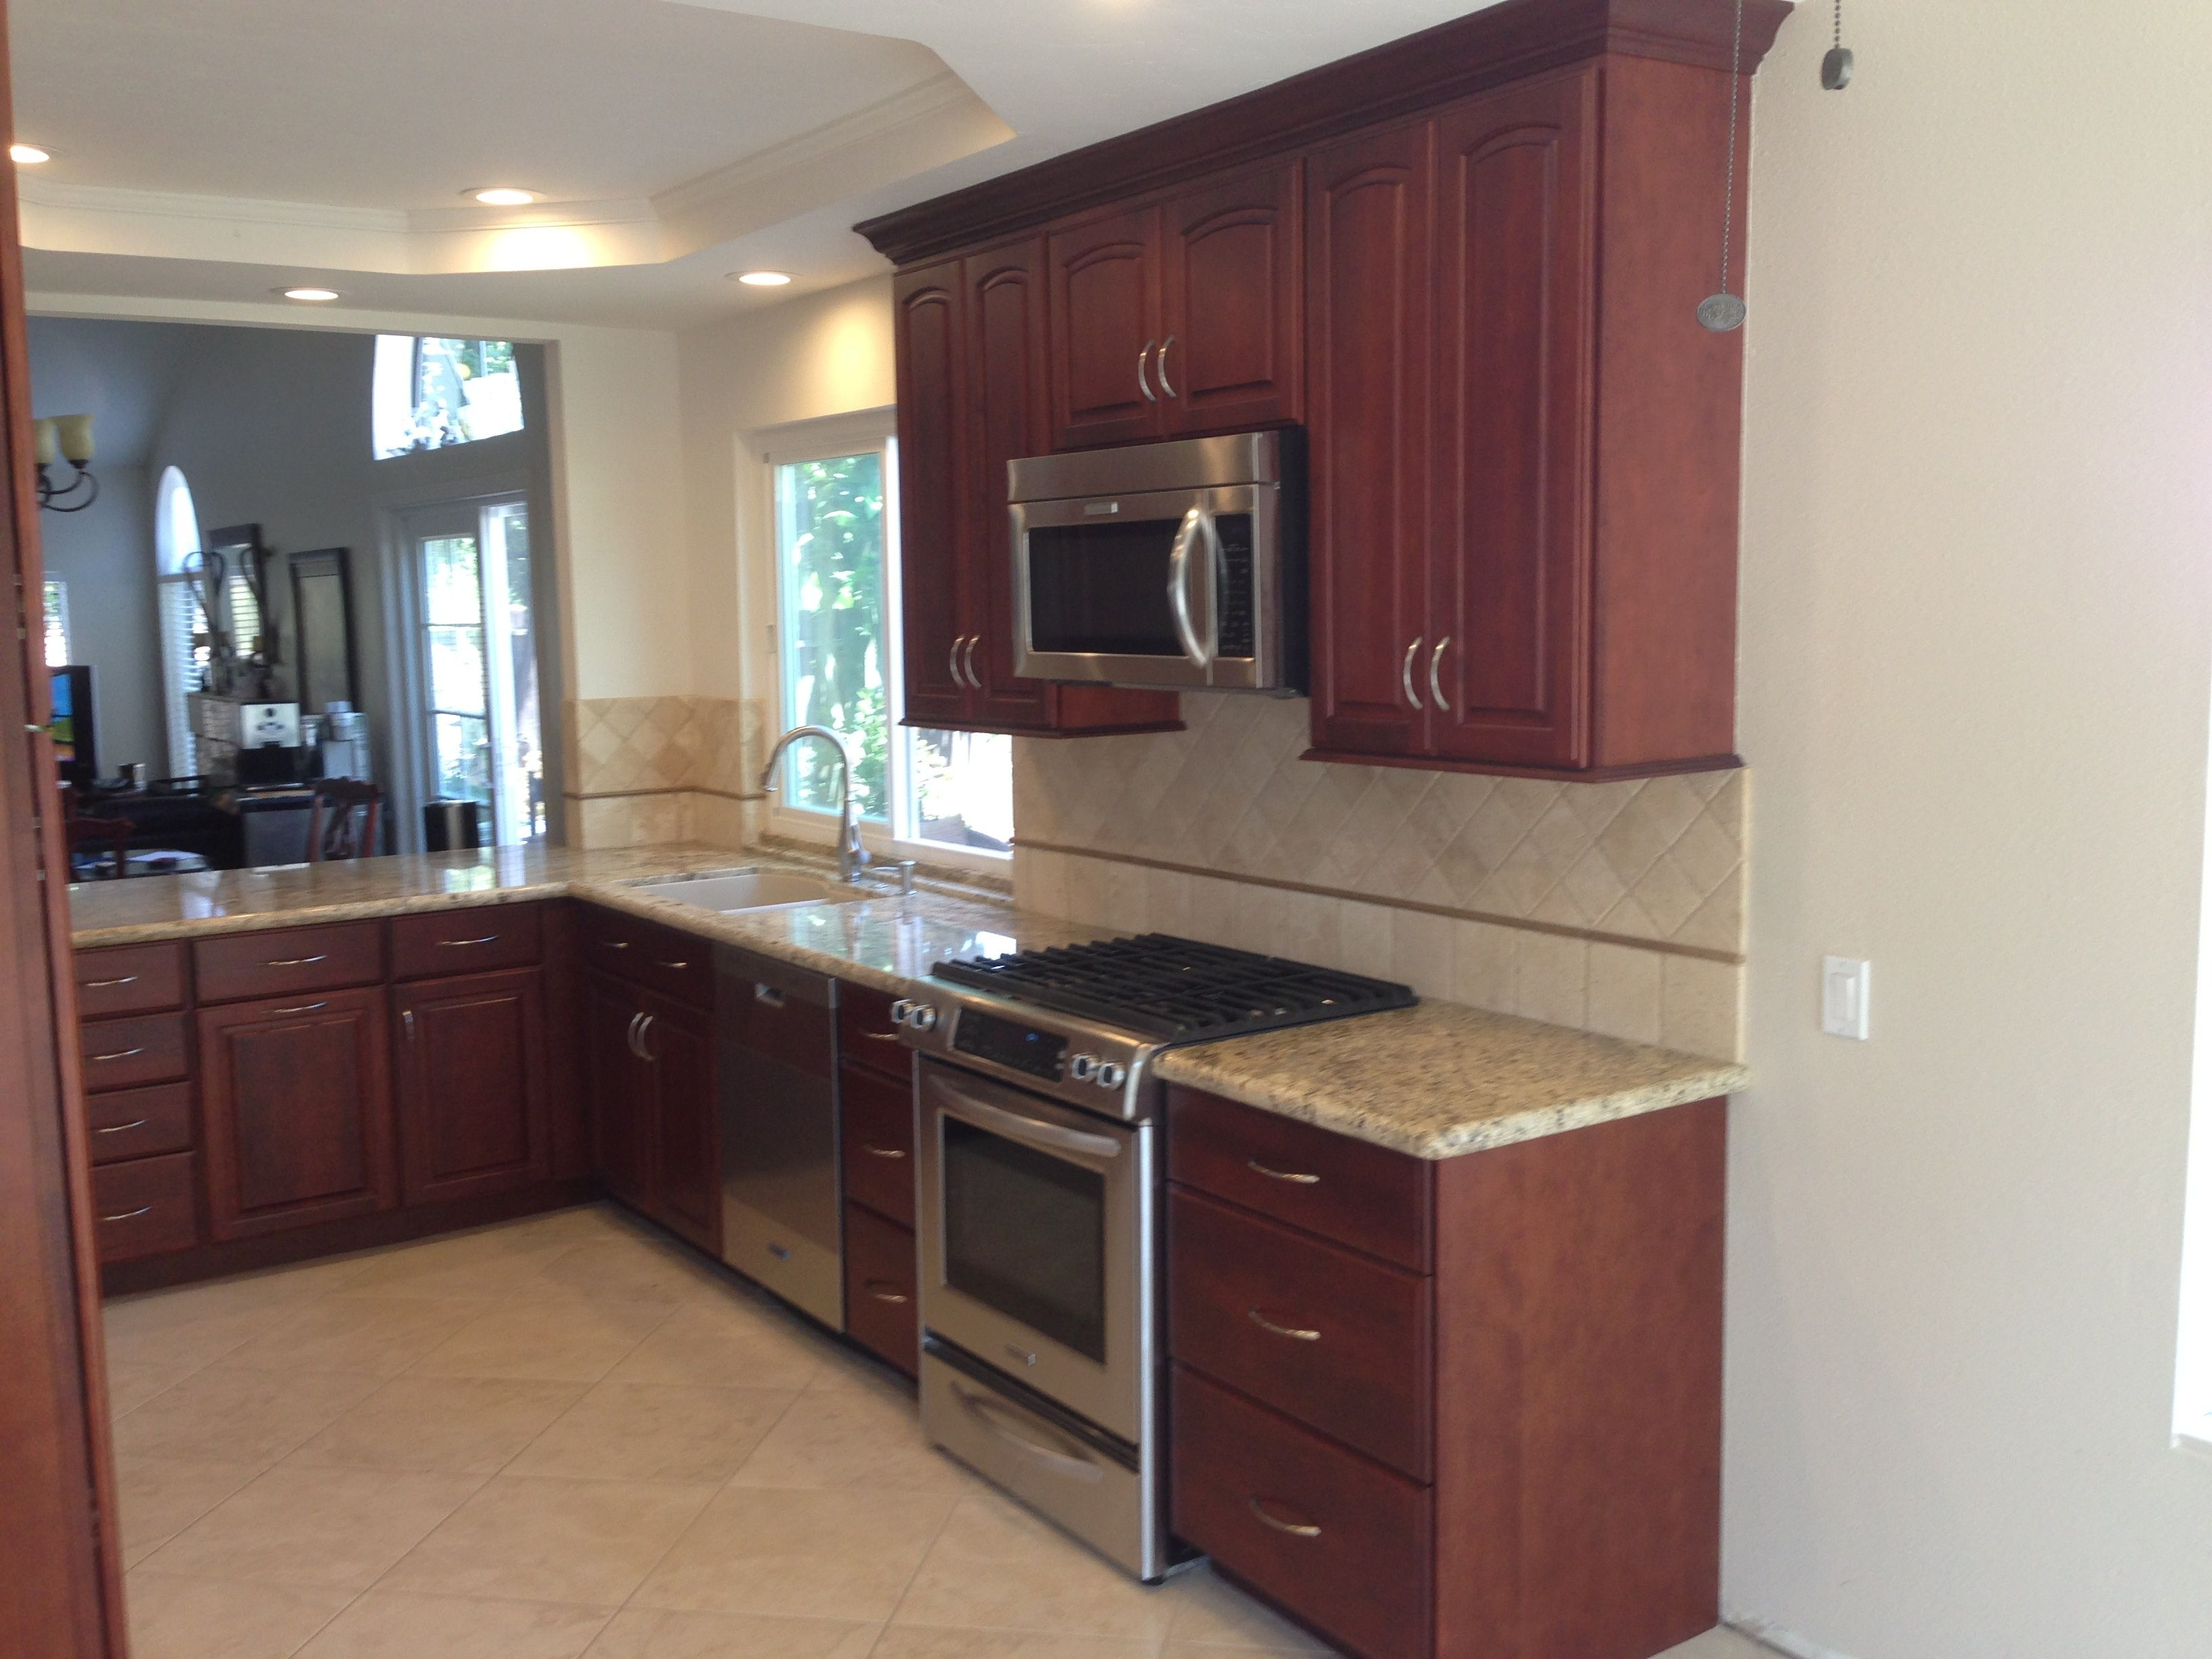 Rancho Kitchen and Bath- San Diego Kitchen Cabinets and Remodeling ...